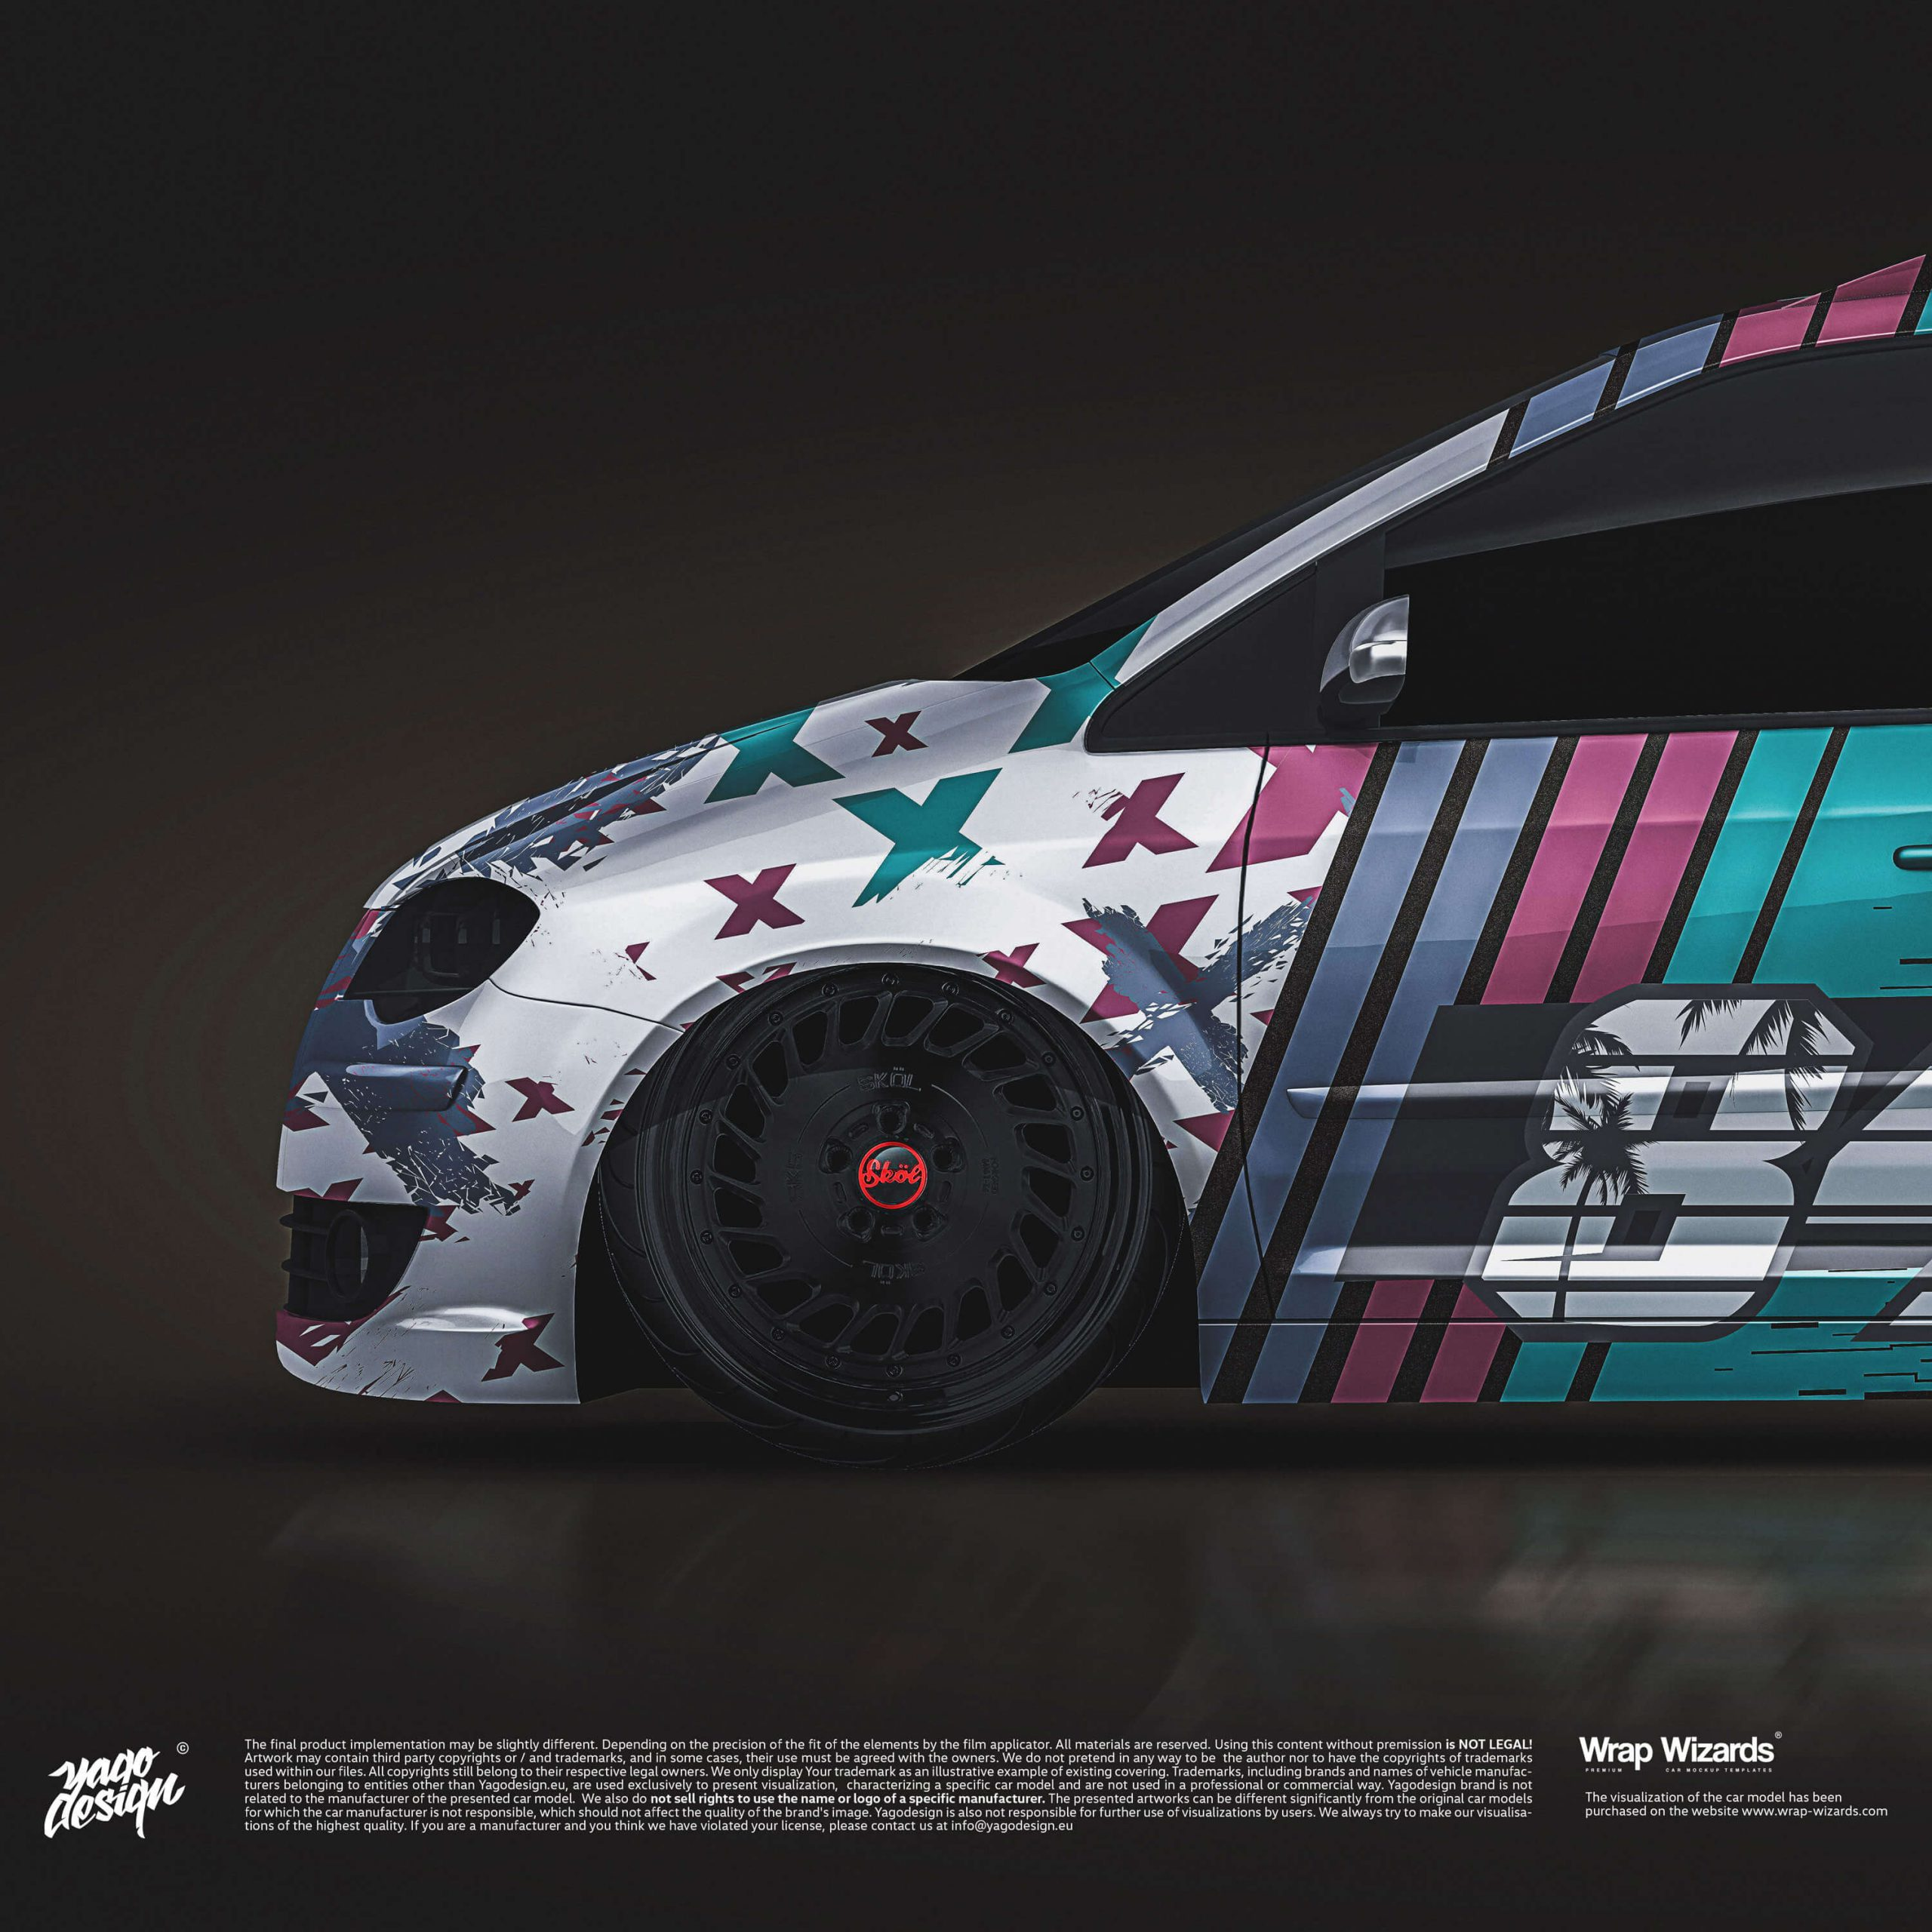 VW-Touran-2007-by-Yagodesign-2020-Car-Wrapping-1